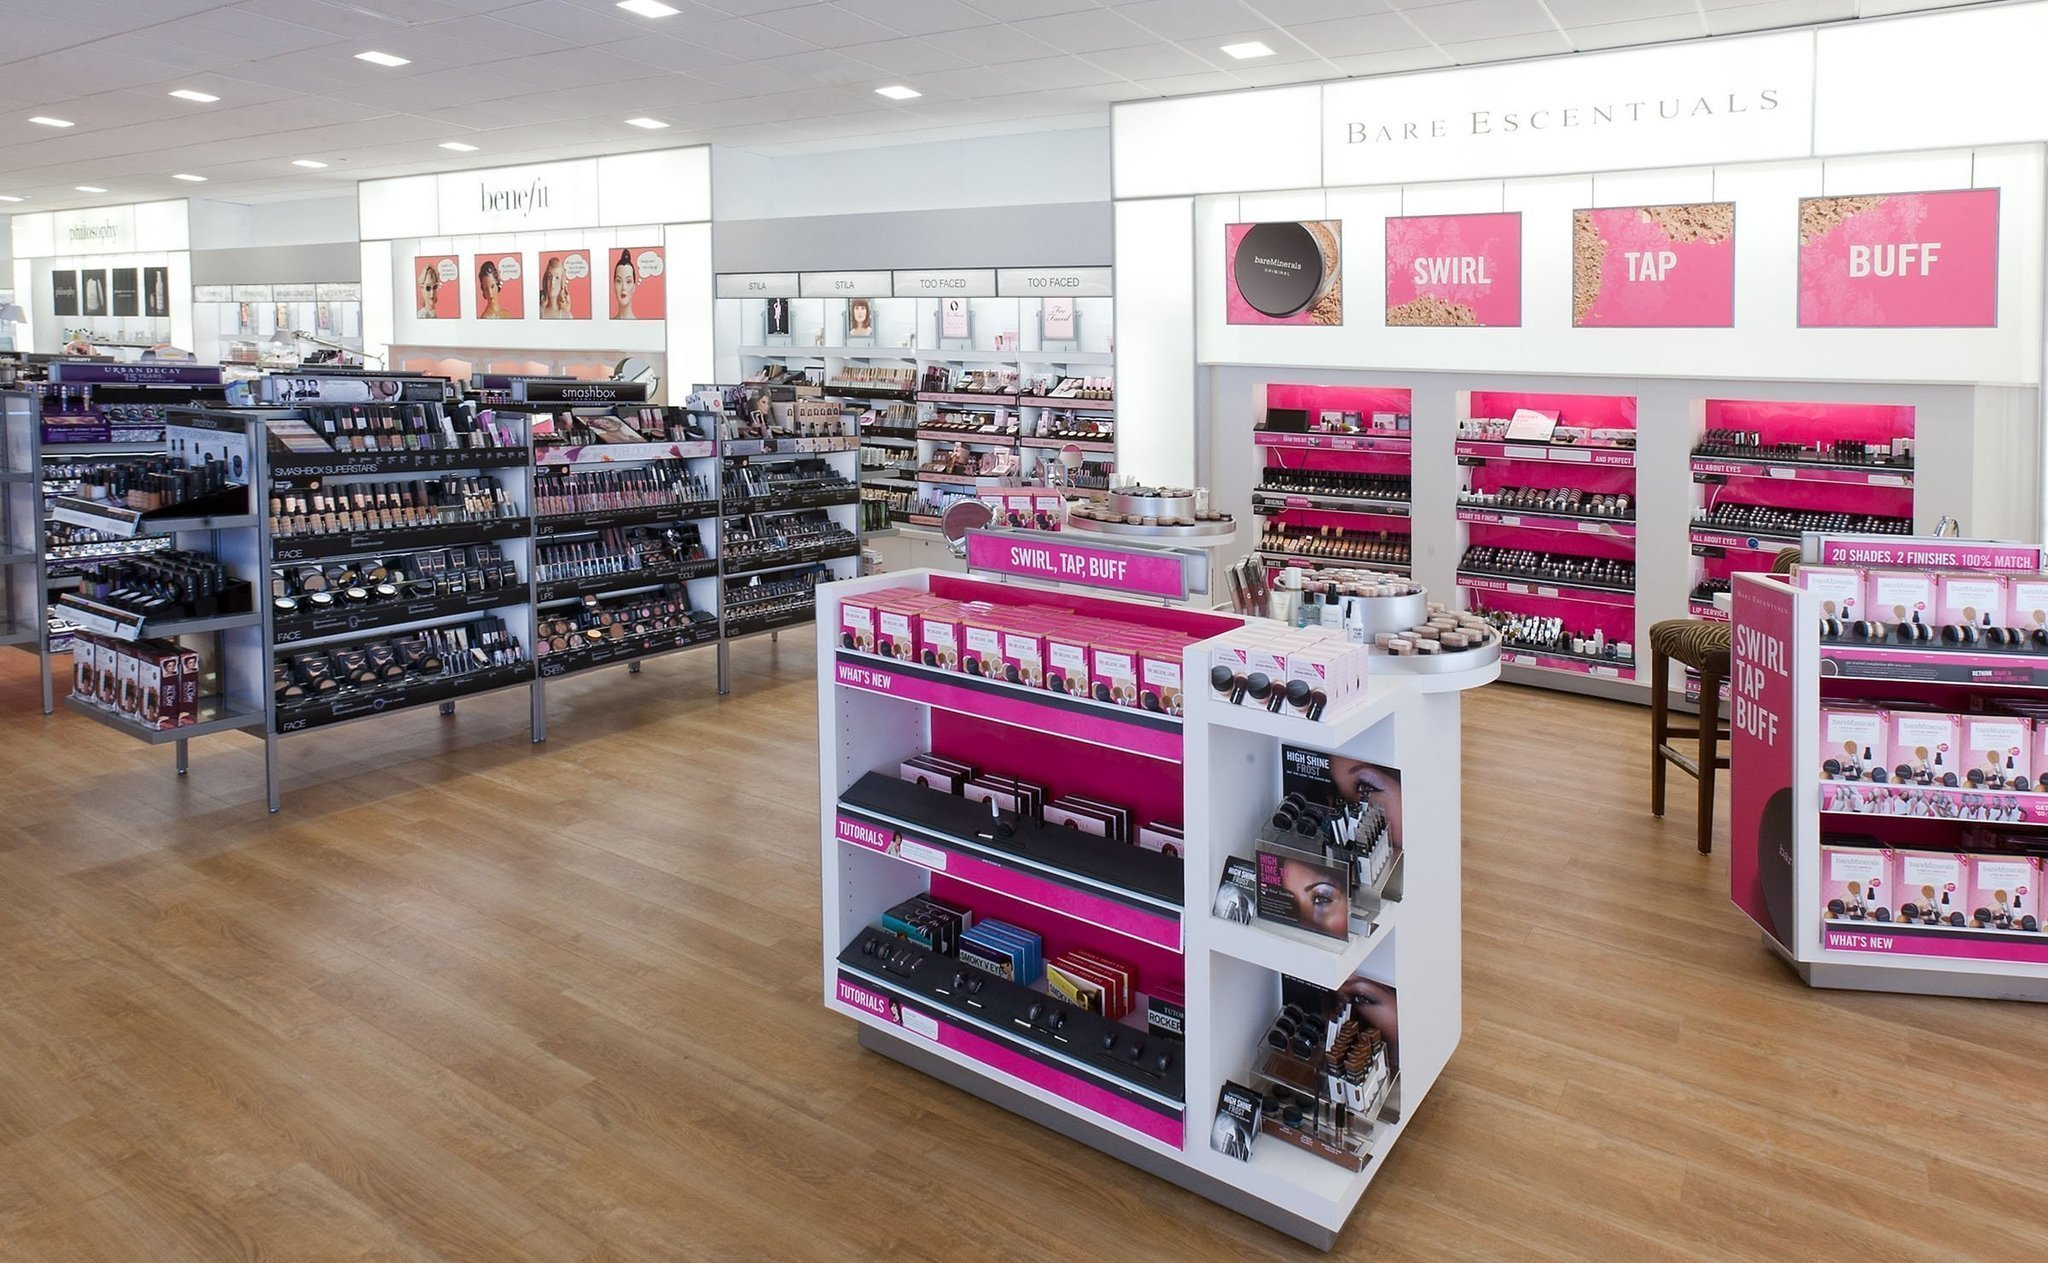 Ulta Beauty Inc. (formerly known as Ulta Salon, Cosmetics & Fragrance Inc. until January ), is a chain of beauty stores in the United States, headquartered in Bolingbrook, Illinois. Ulta Beauty carries cosmetics and skincare brands, men's and women's fragrances, and haircare products. Each store is also equipped with a salon.